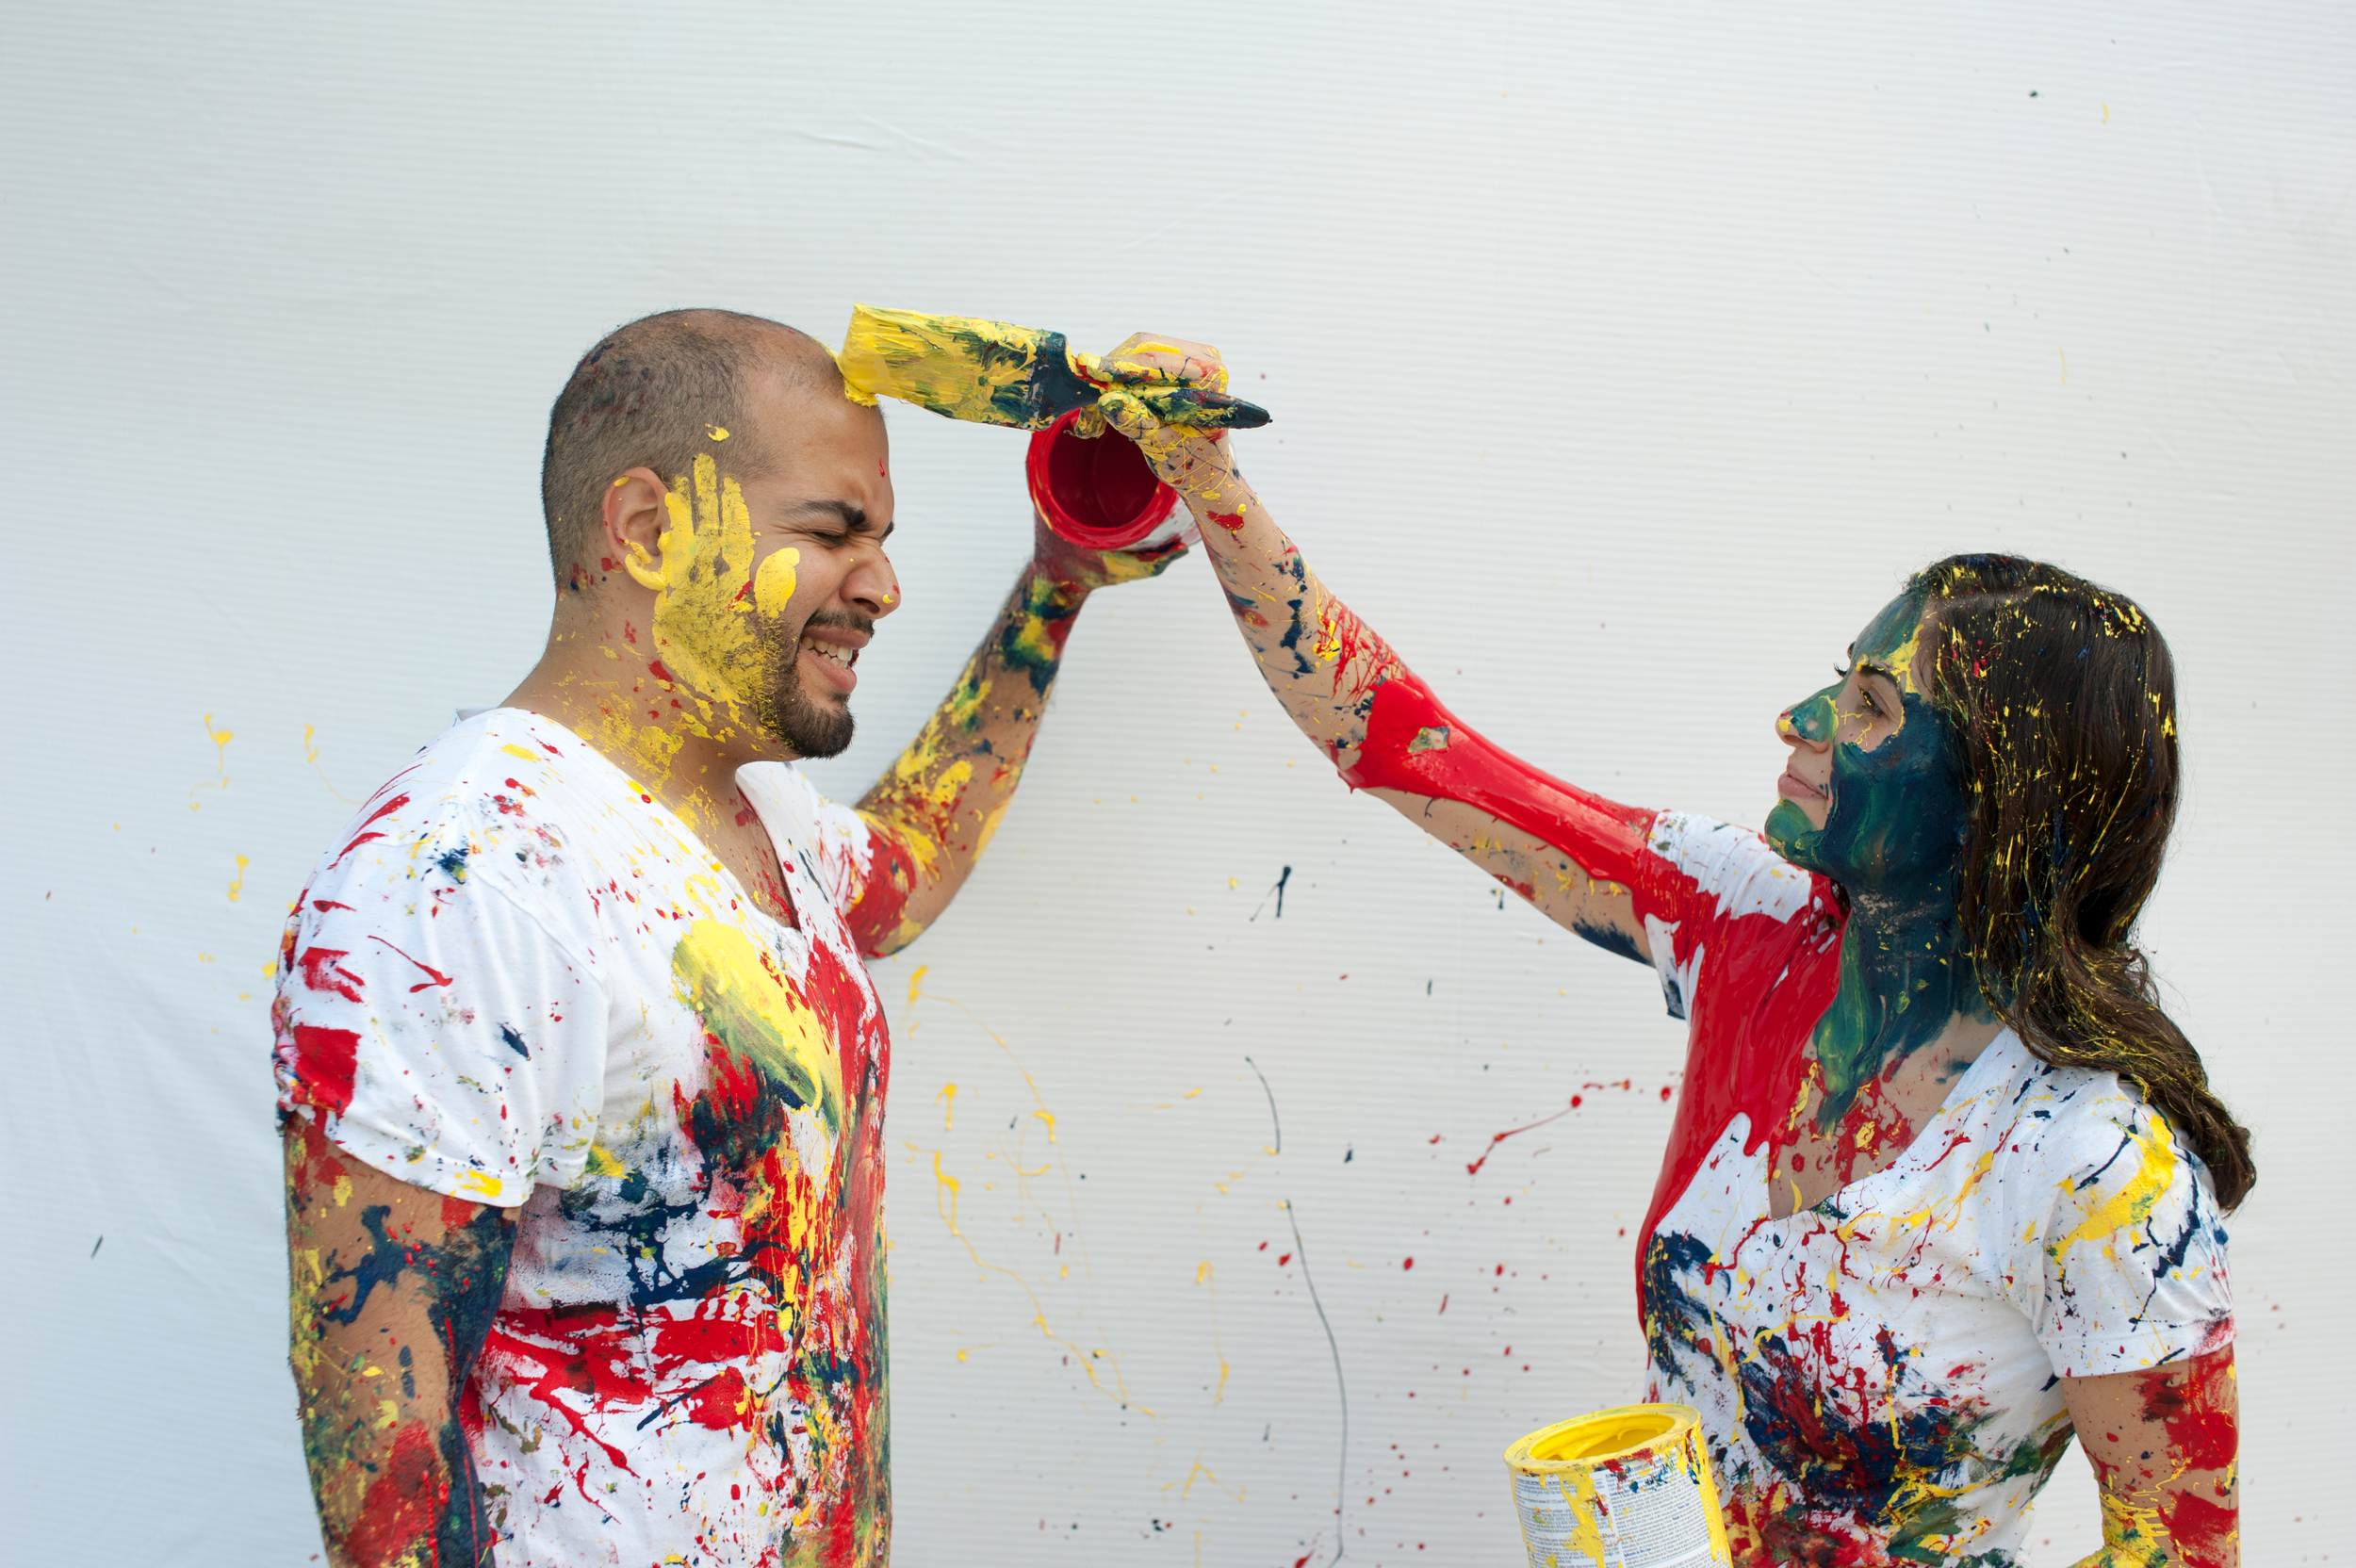 Paint War Engagement Session by Mantas Kubilinskas-20.jpg